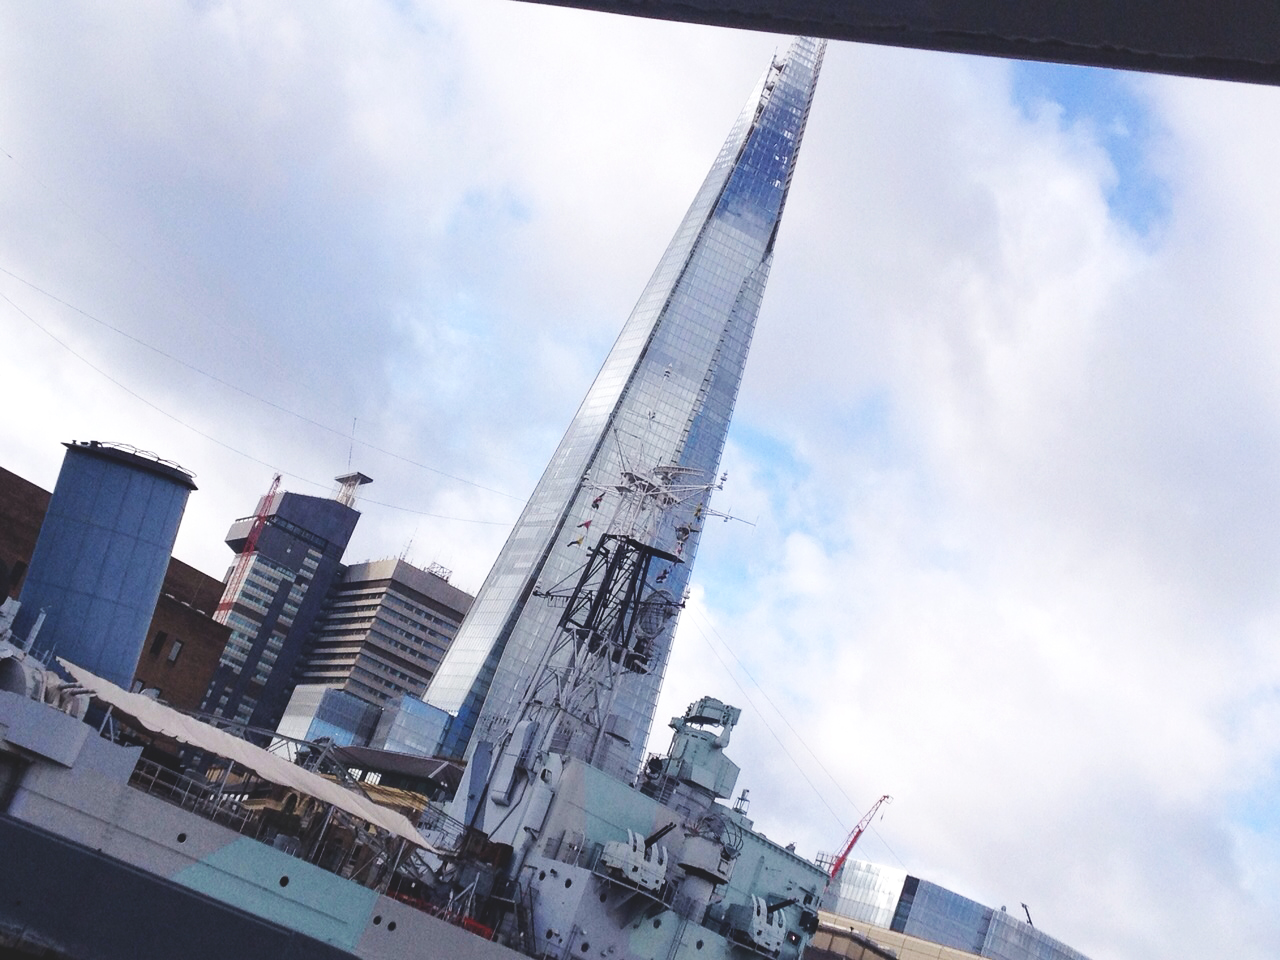 Maybe not the best view of the Shard but it is definitely a monument you can't miss!